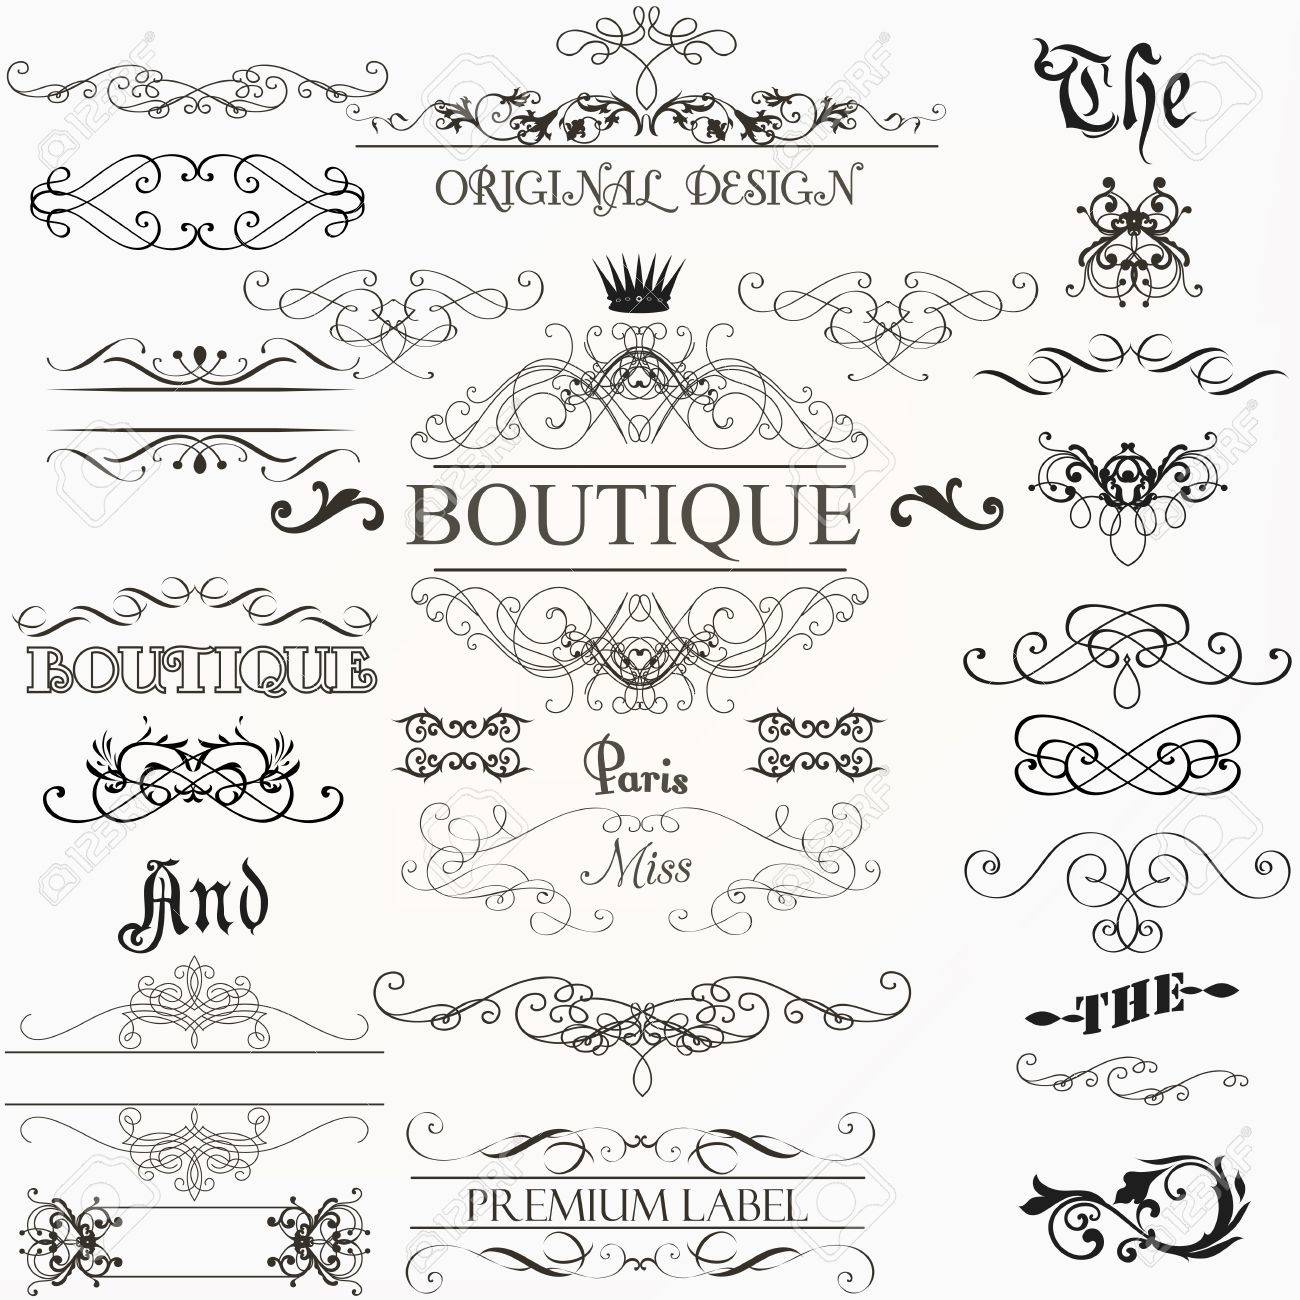 Set Of Vintage Decorations Elements Flourishes Calligraphic Ornaments Borders And Frames Retro Style Stock Vector